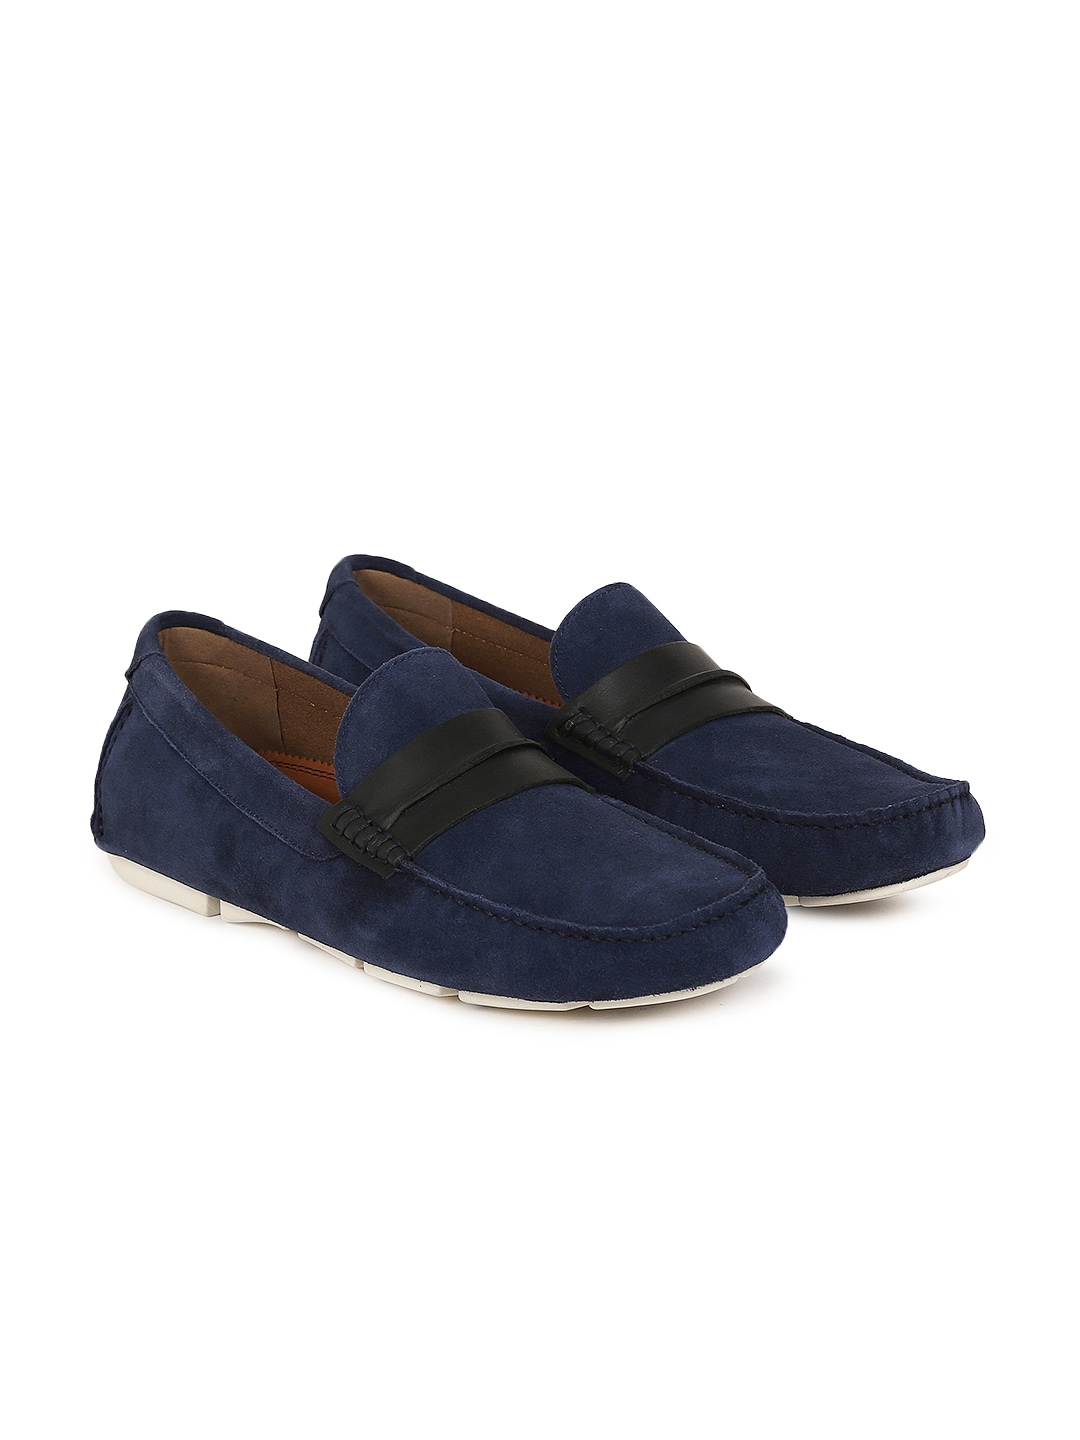 32802266091 Buy Steve Madden Men Navy Blue Suede Loafers - Casual Shoes for Men ...